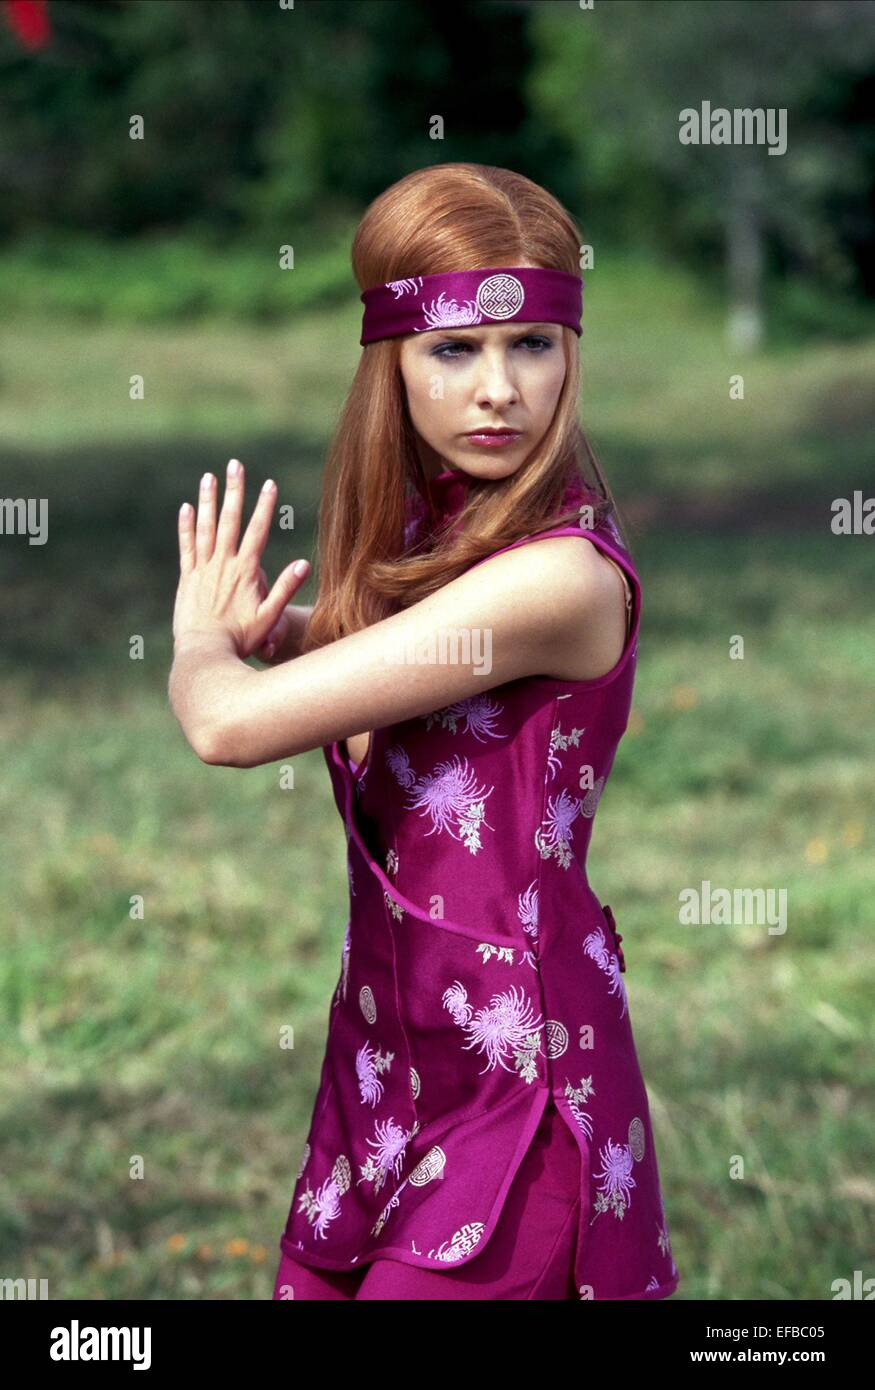 Sarah Michelle Gellar Scooby Doo 2 Monsters Unleashed 2004 Stock Photo Alamy